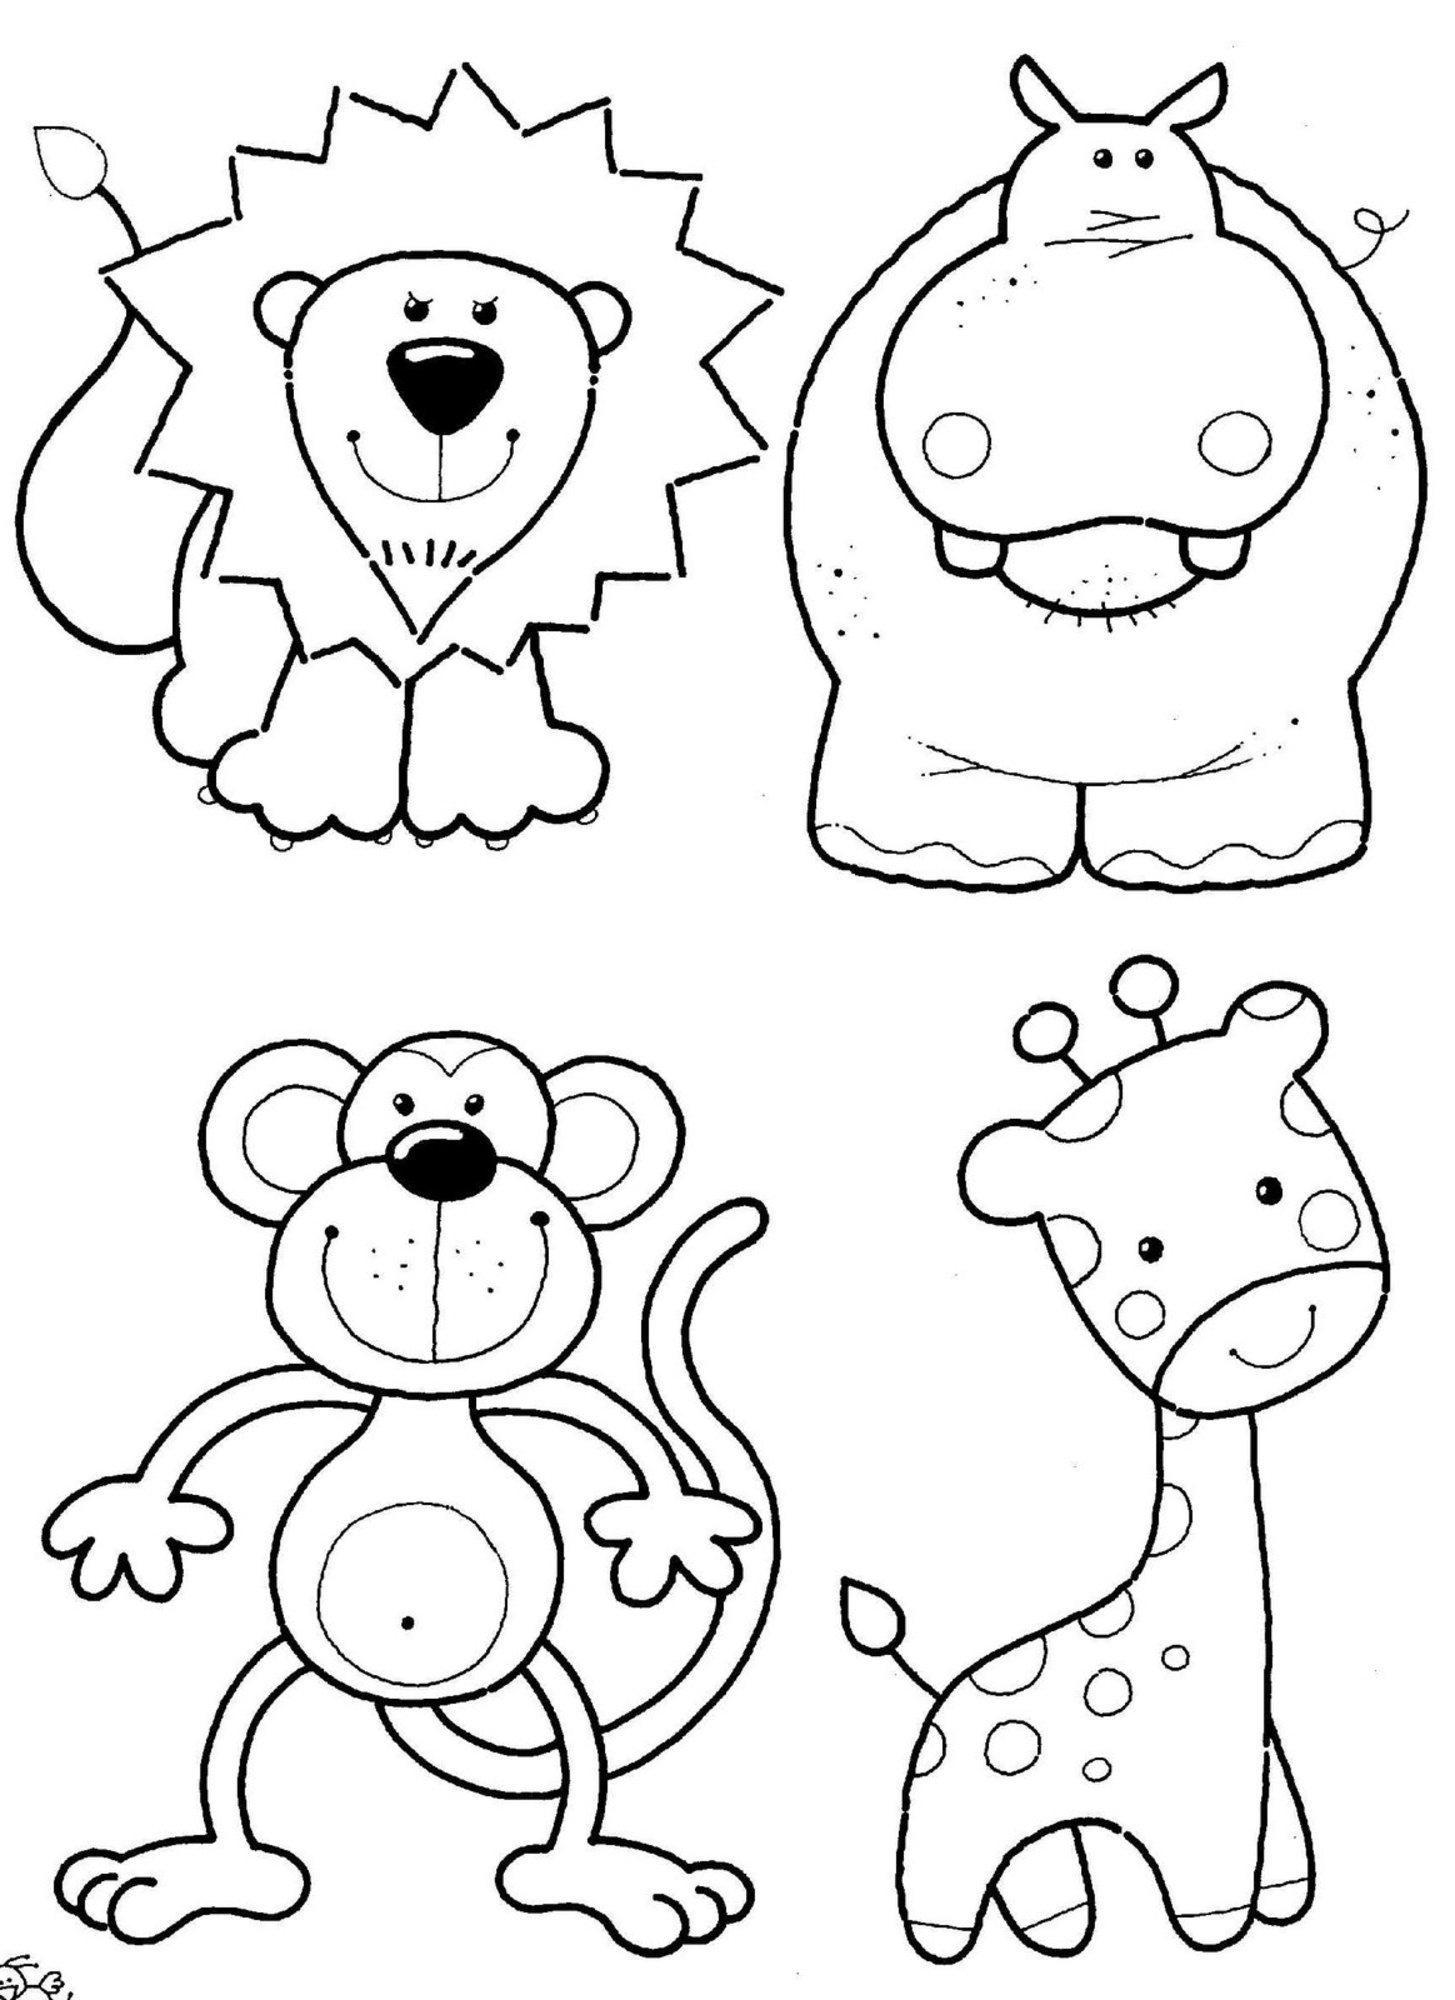 Cute Animals Coloring Pages Cute Zoo Animals Coloring Pages Zoo